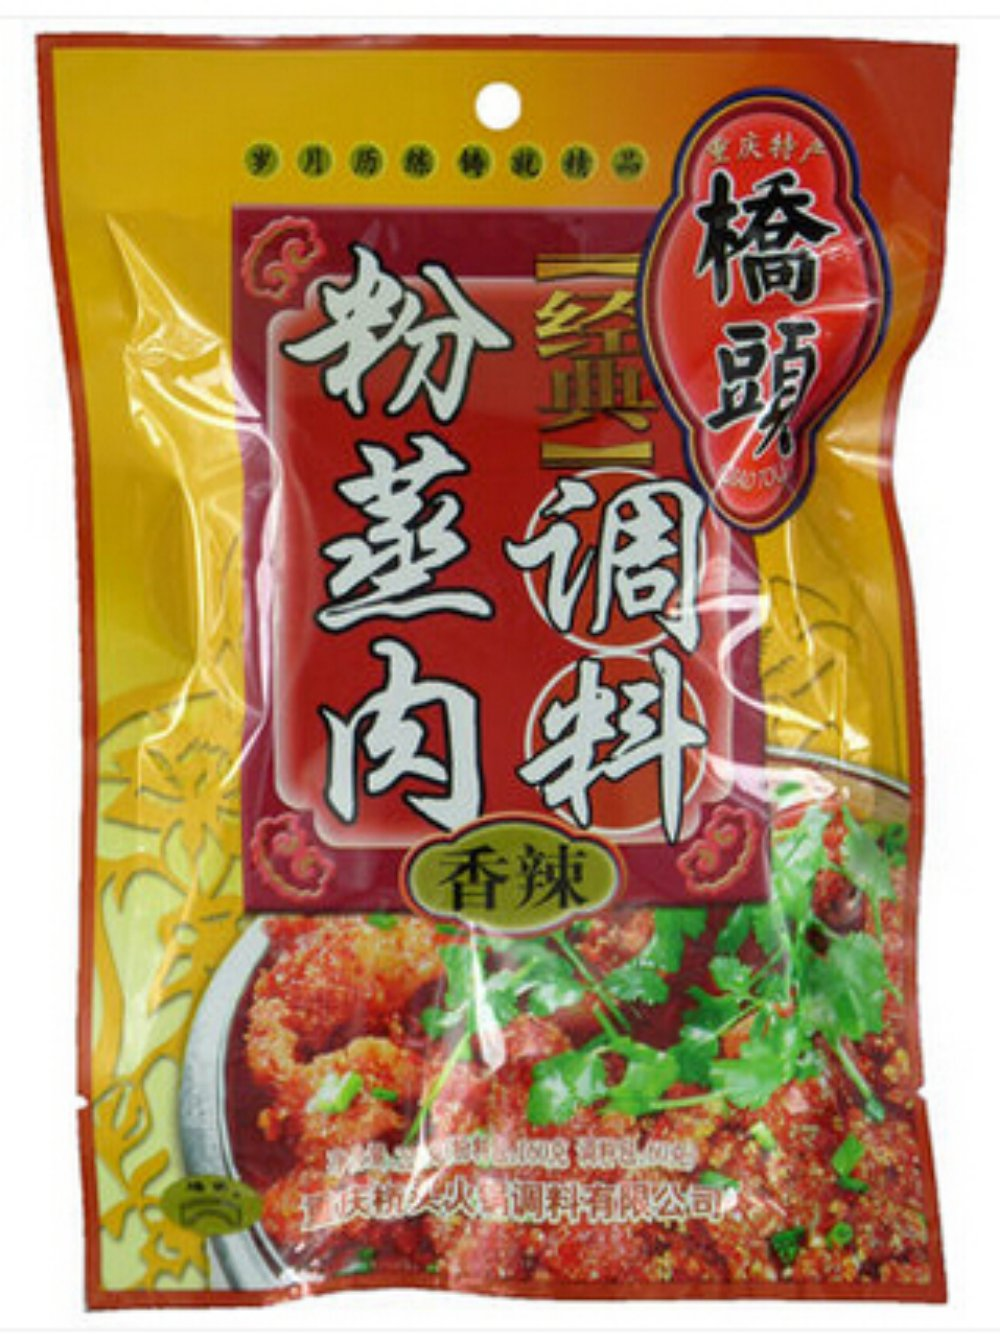 Helen Ou@chongqing Specialty: Qiaotou Spicy or Xiangla Steam Meat Powder Seasoning or Condiment220 G/7.76oz/0.49lb